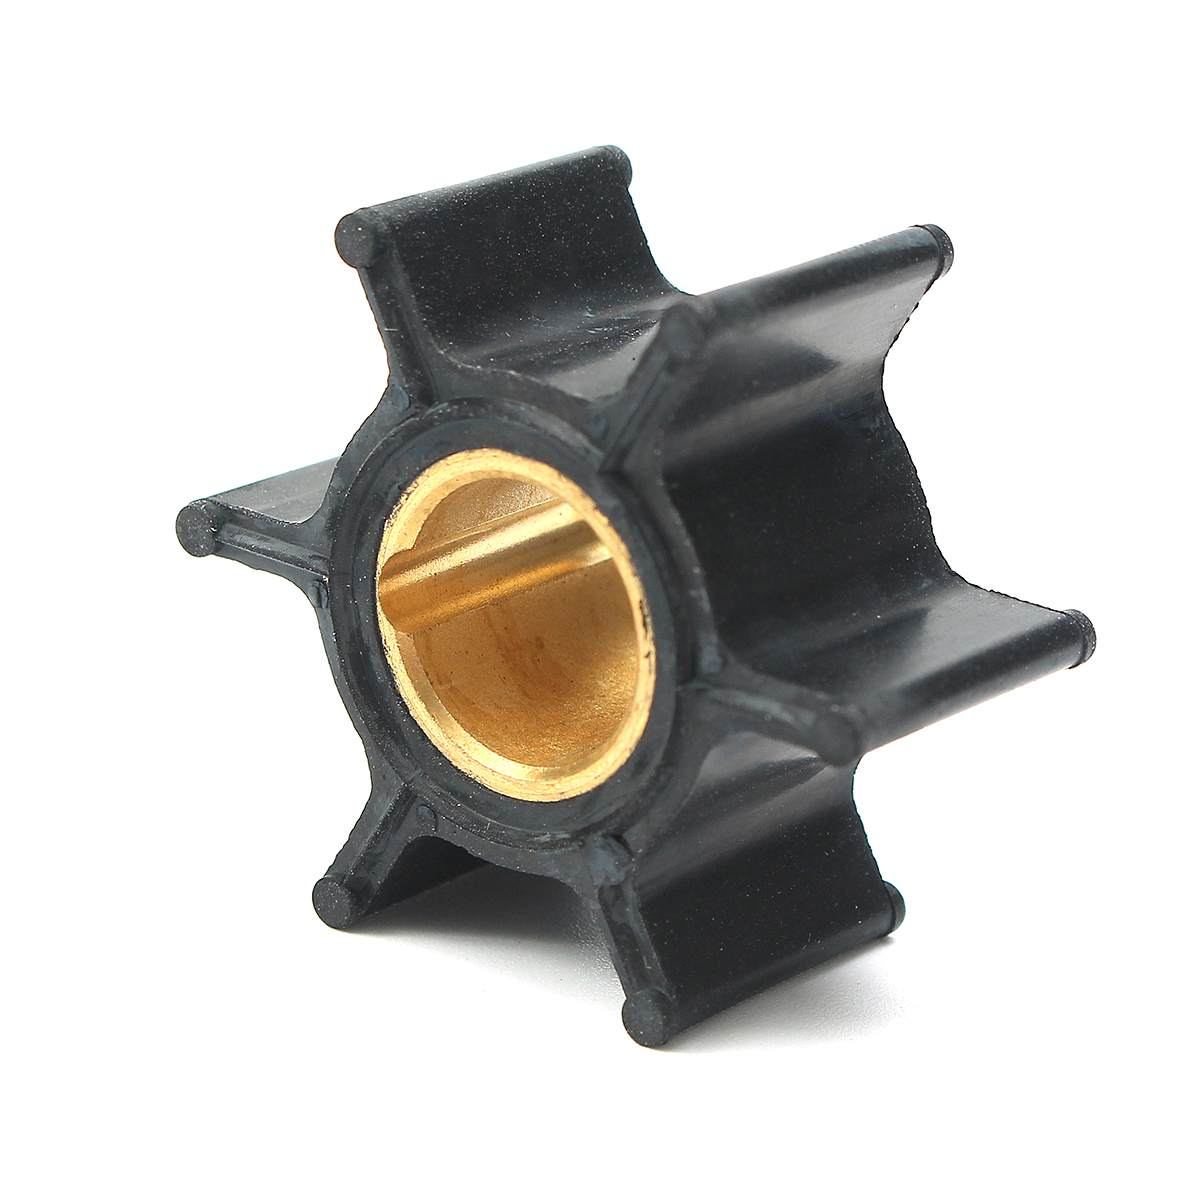 386084 Outboard impeller for Johnson Evinrude OMC 9.9-15HP Boat Engine,18-3050